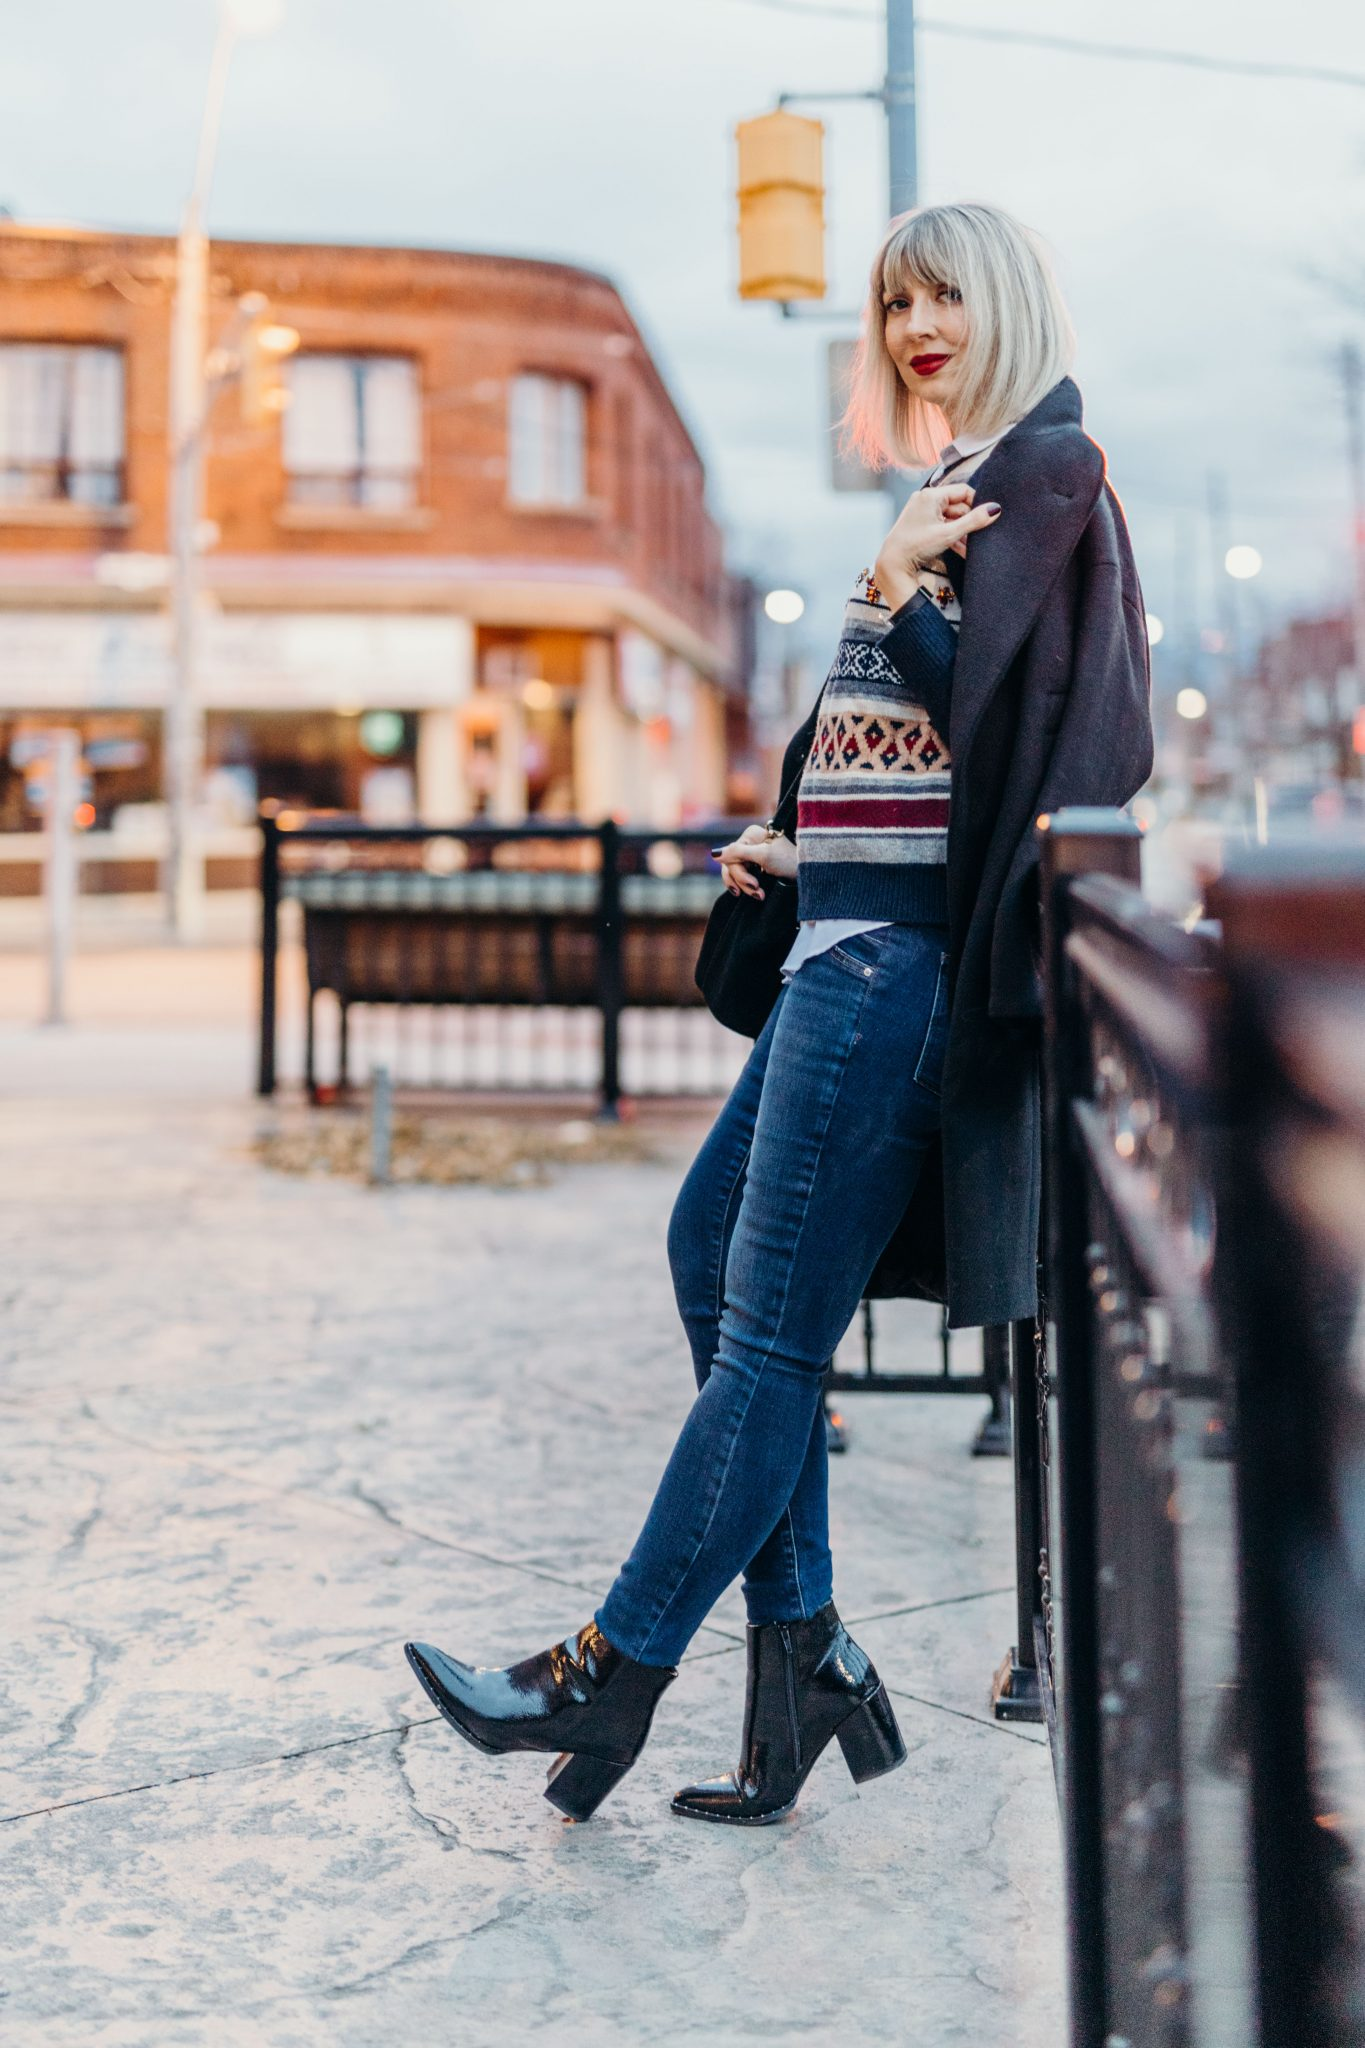 Christmas embellished sweater city street style (11 of 11)